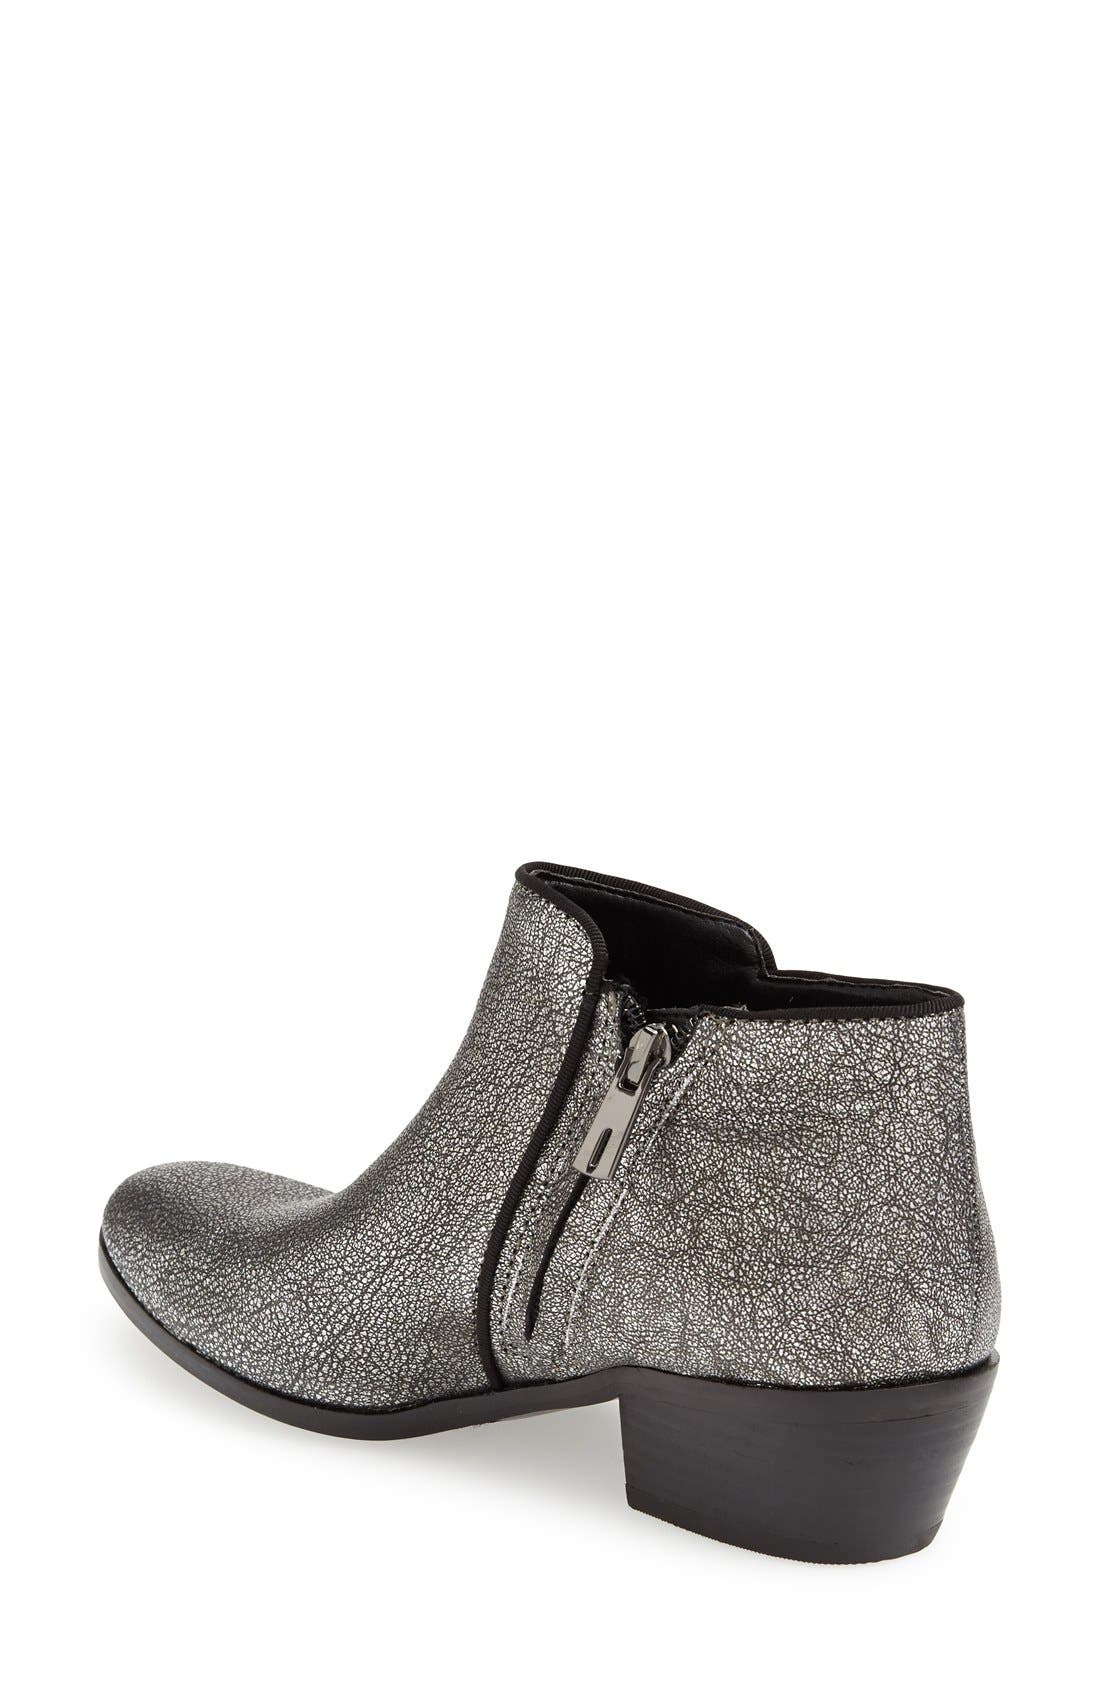 ,                             'Petty' Chelsea Boot,                             Alternate thumbnail 56, color,                             040